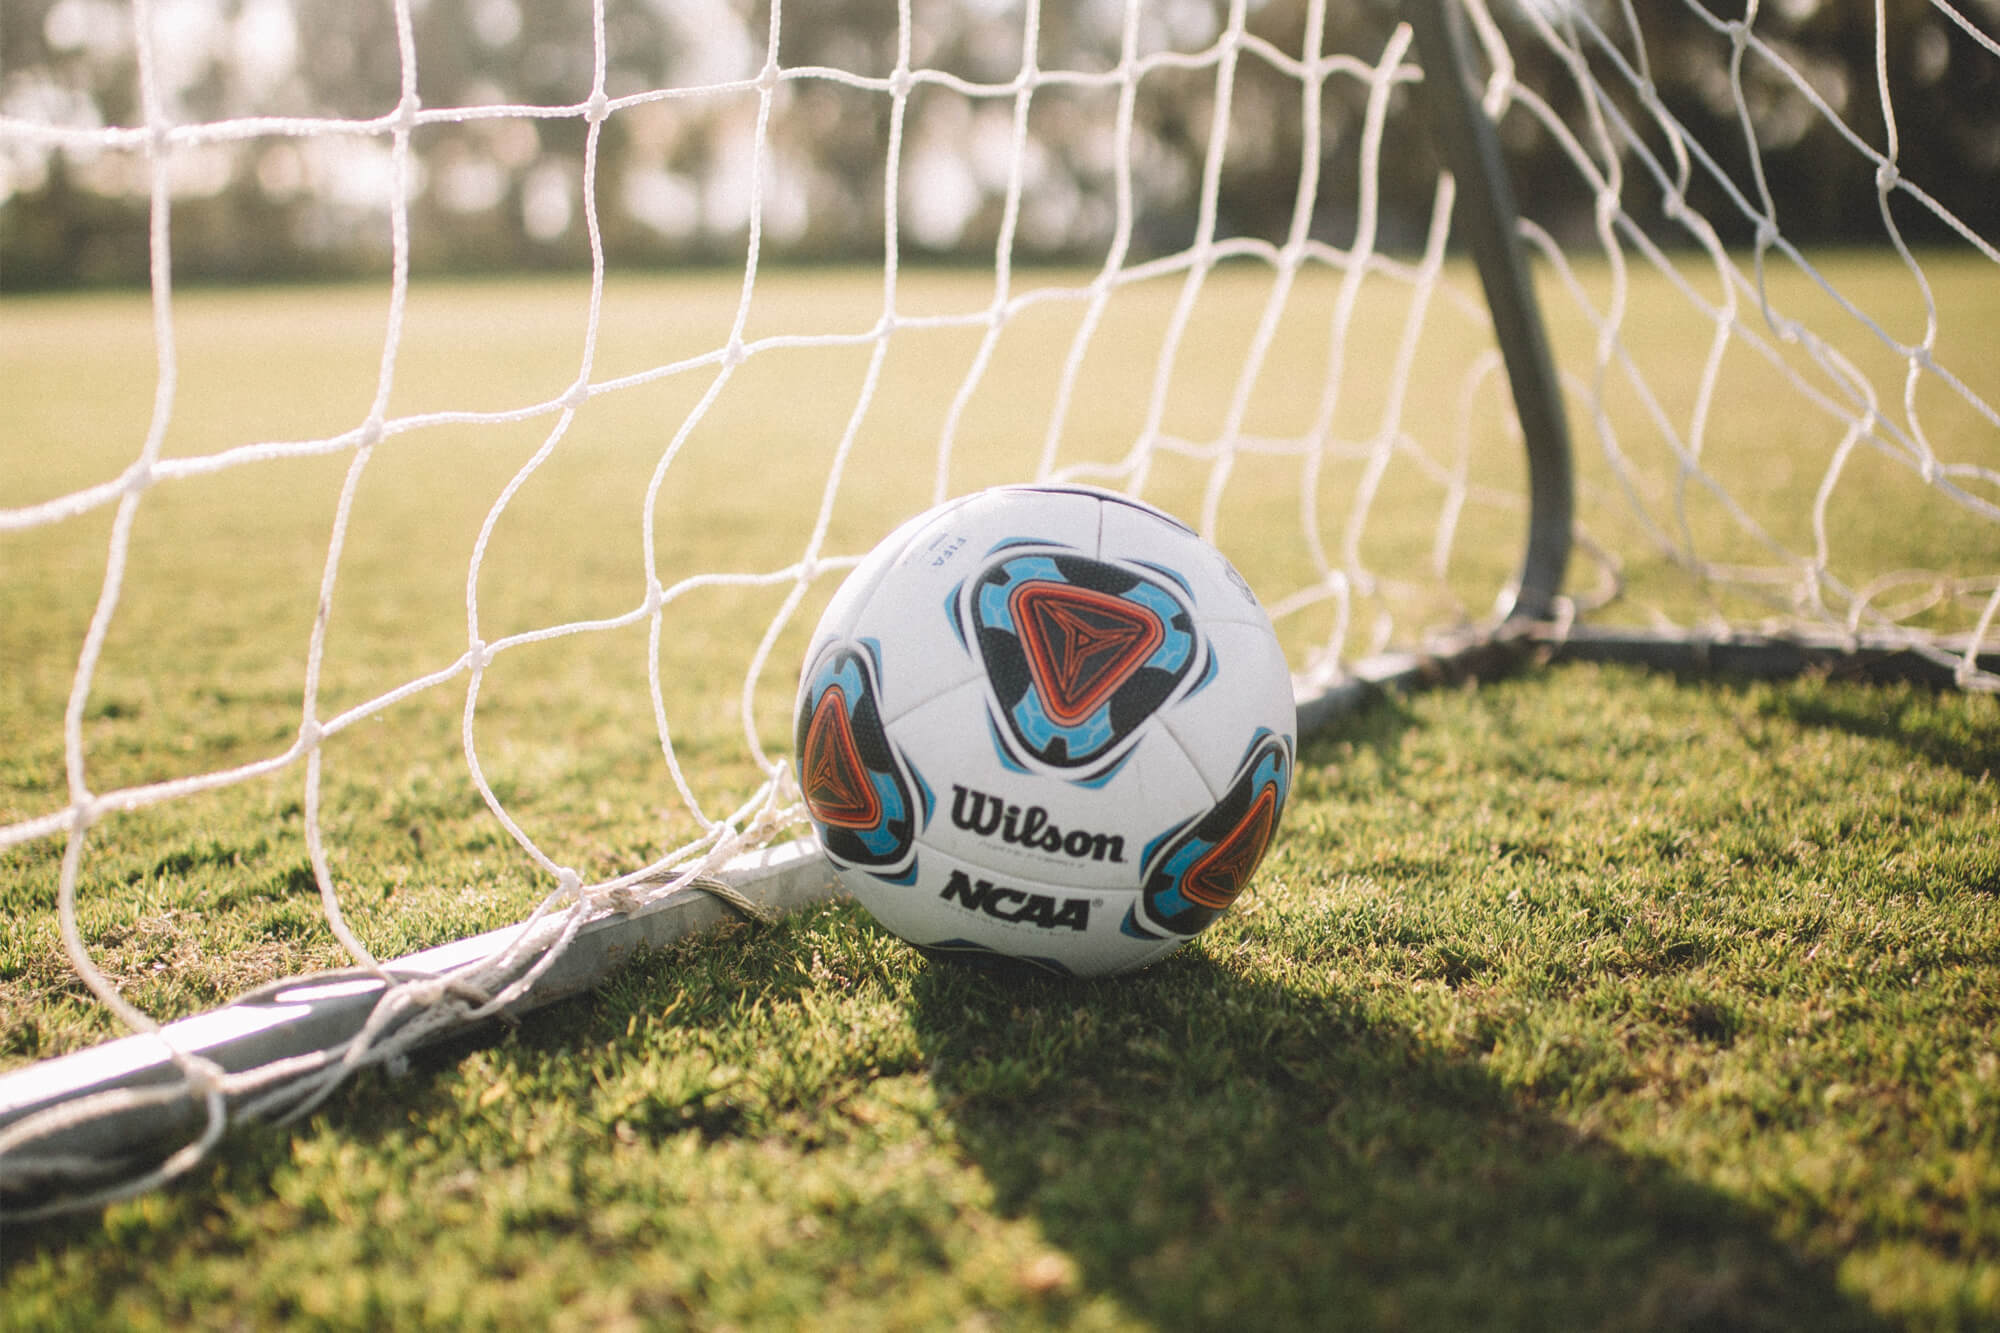 A football sitting in a goal net on a pitch.